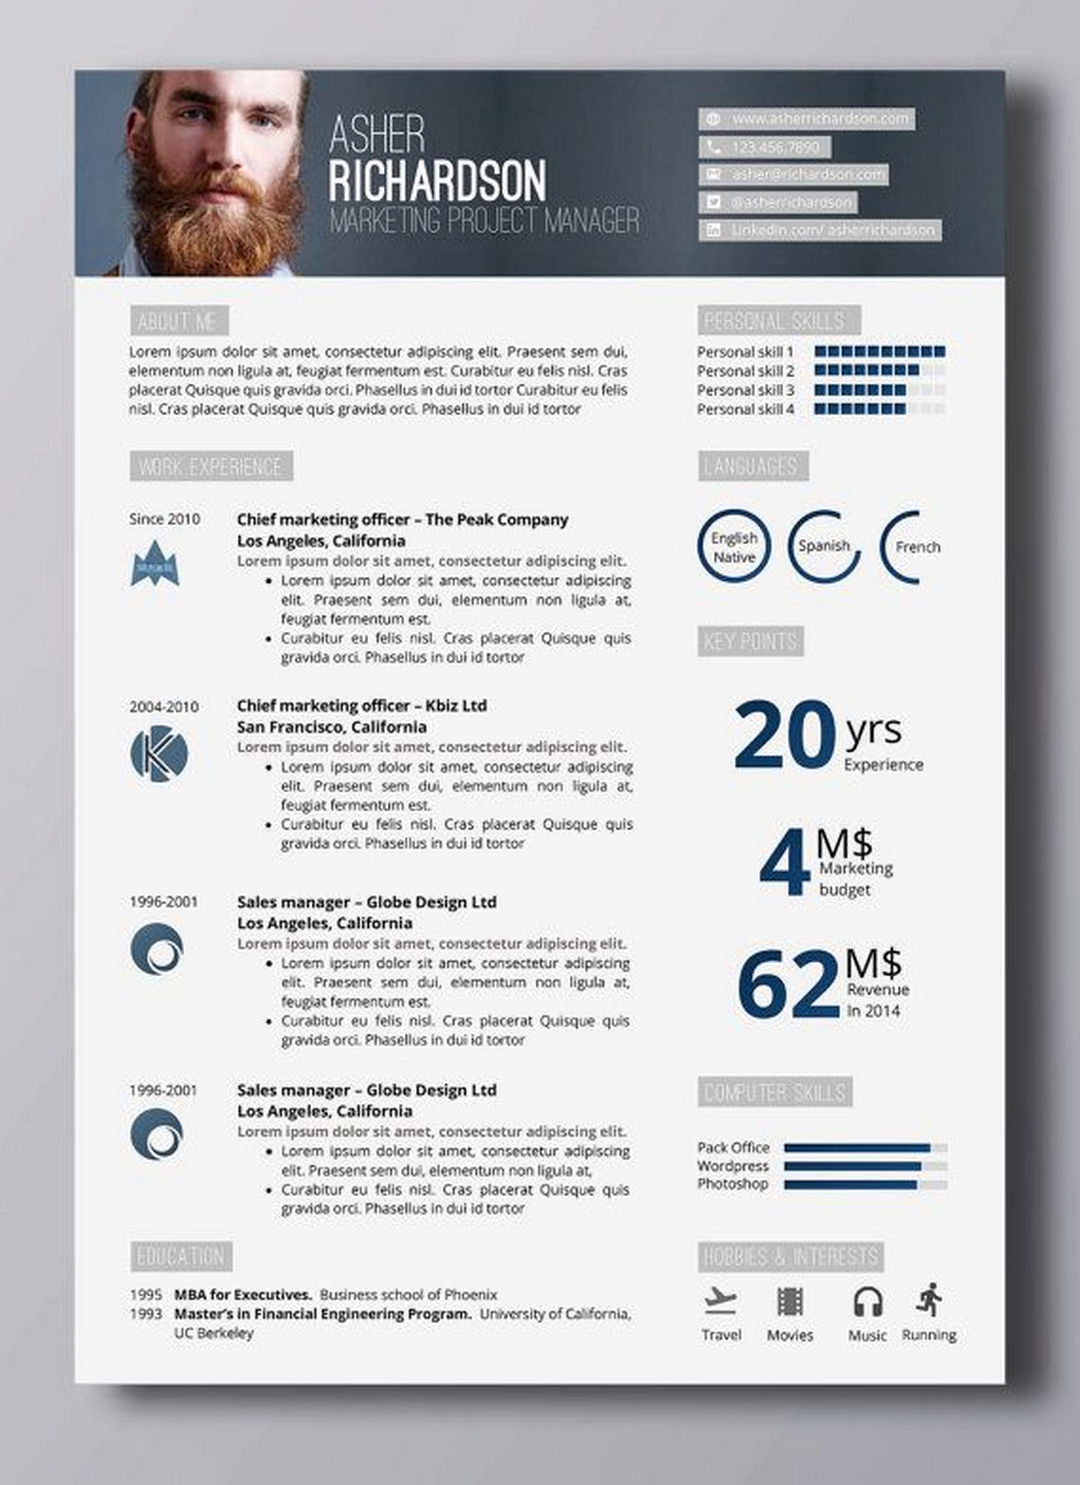 69 Well Designed Graphic Design Resume Inspirations Designlisticle